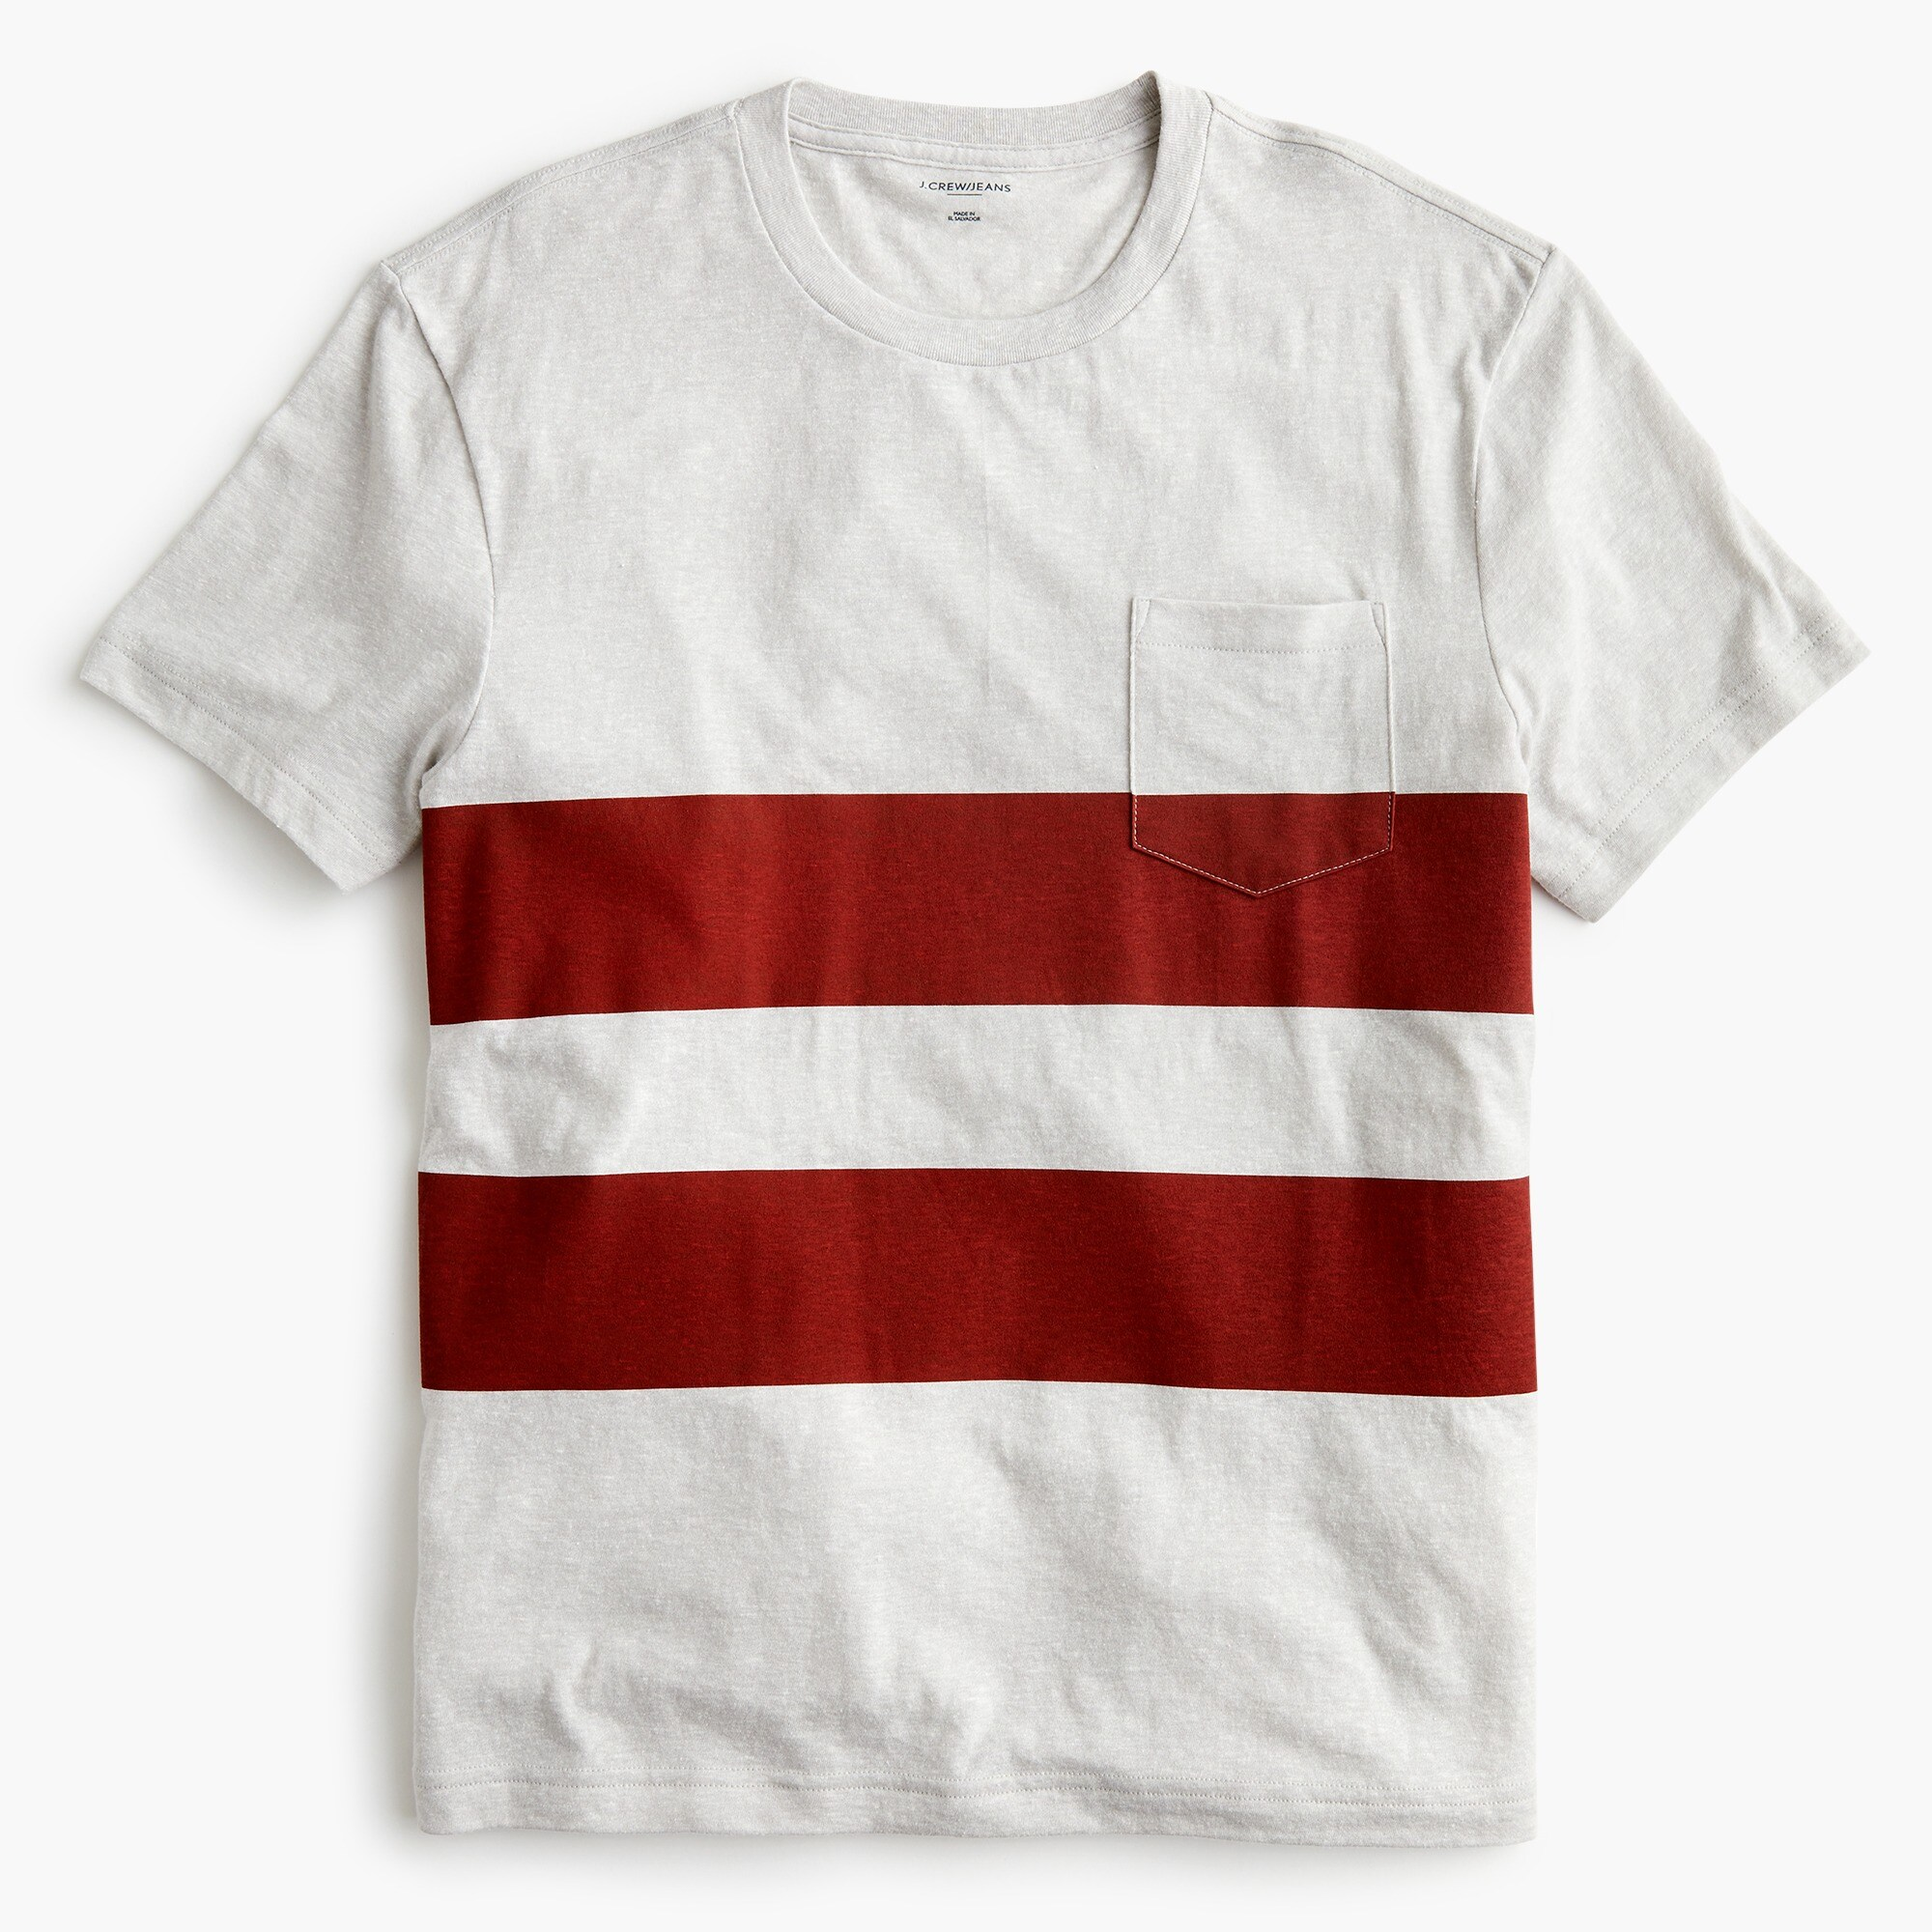 mens Triblend T-shirt in red double stripe